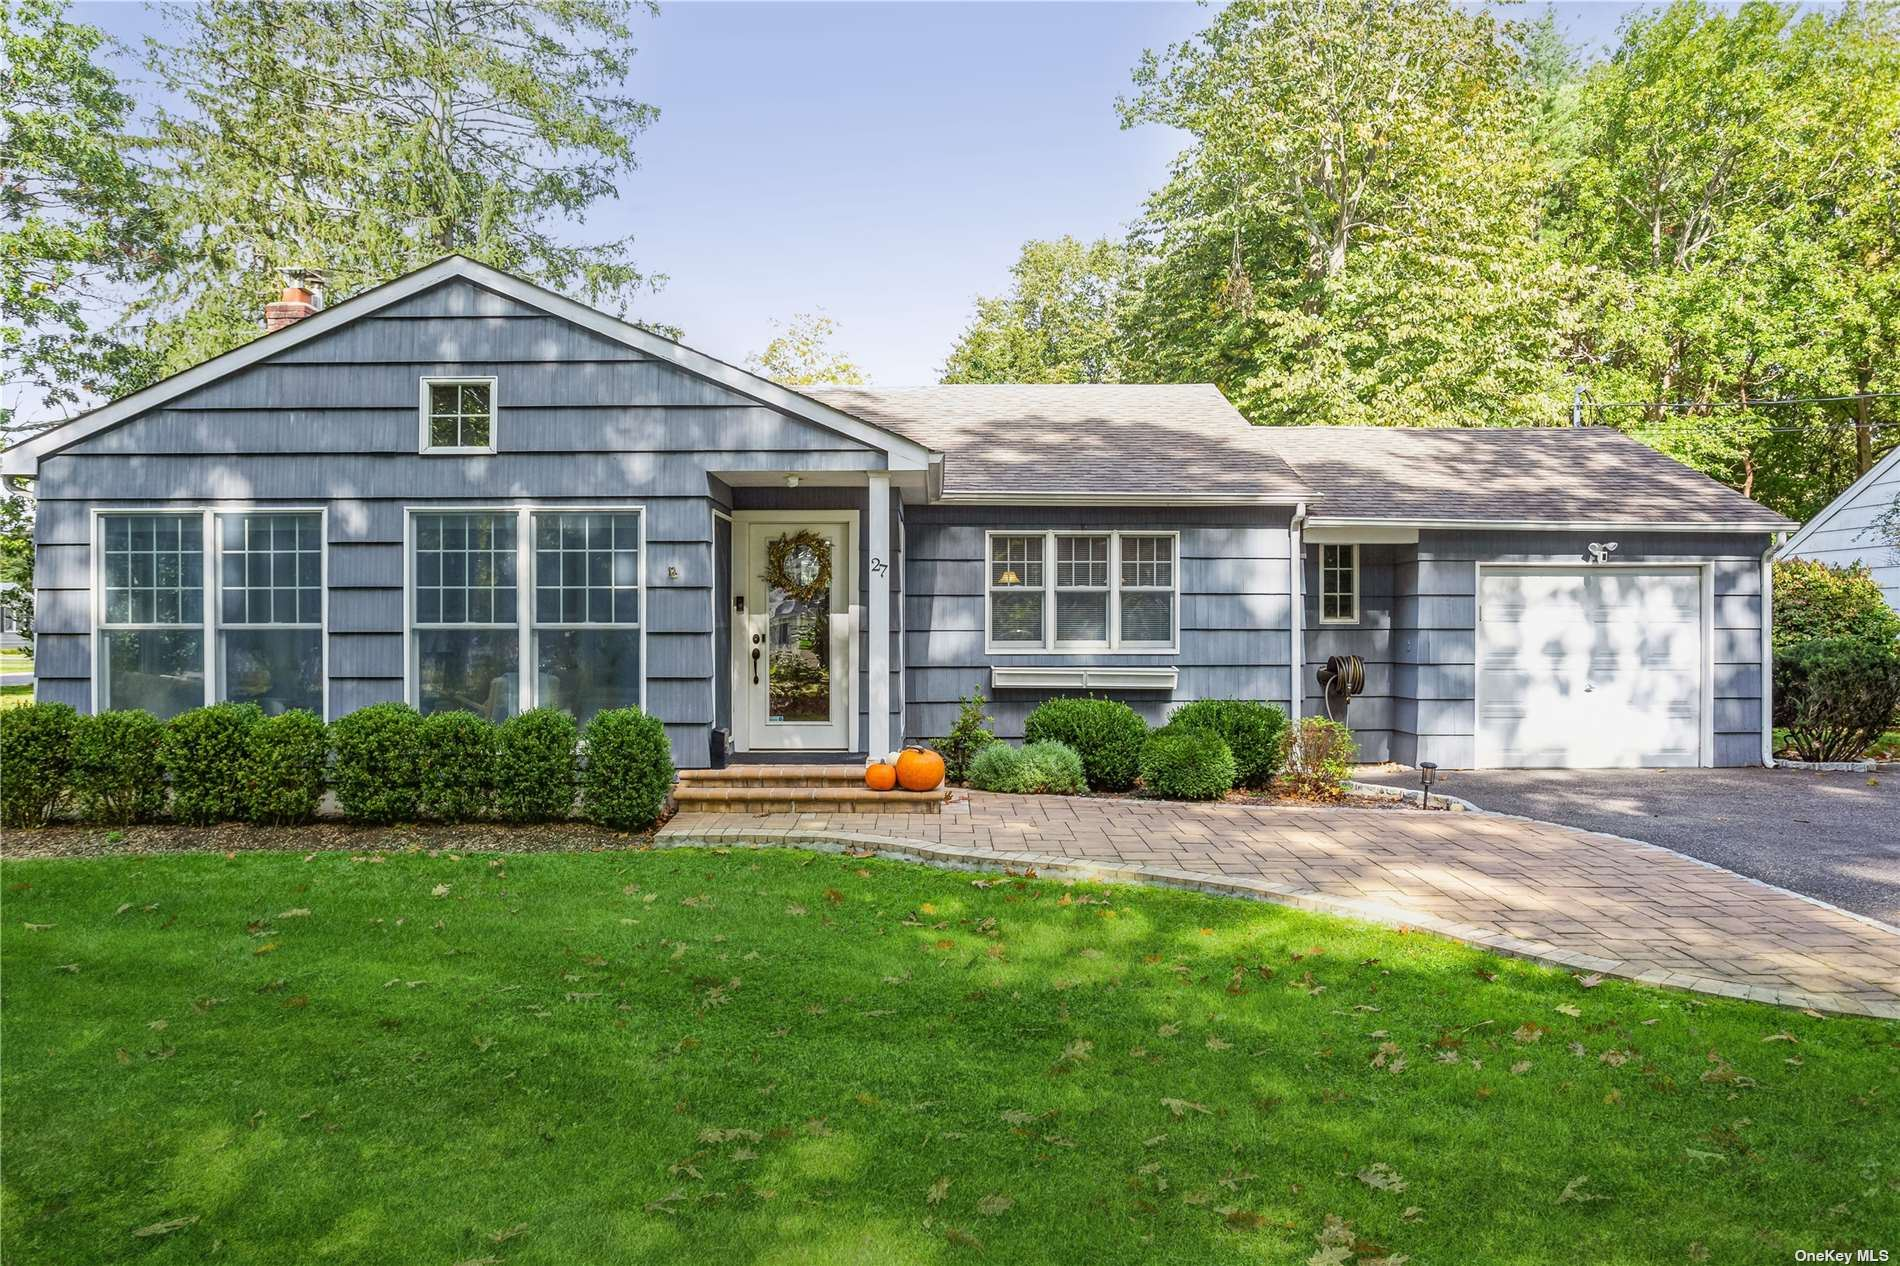 27 Spruce Drive, East Patchogue, NY 11772 - MLS#: 3353286